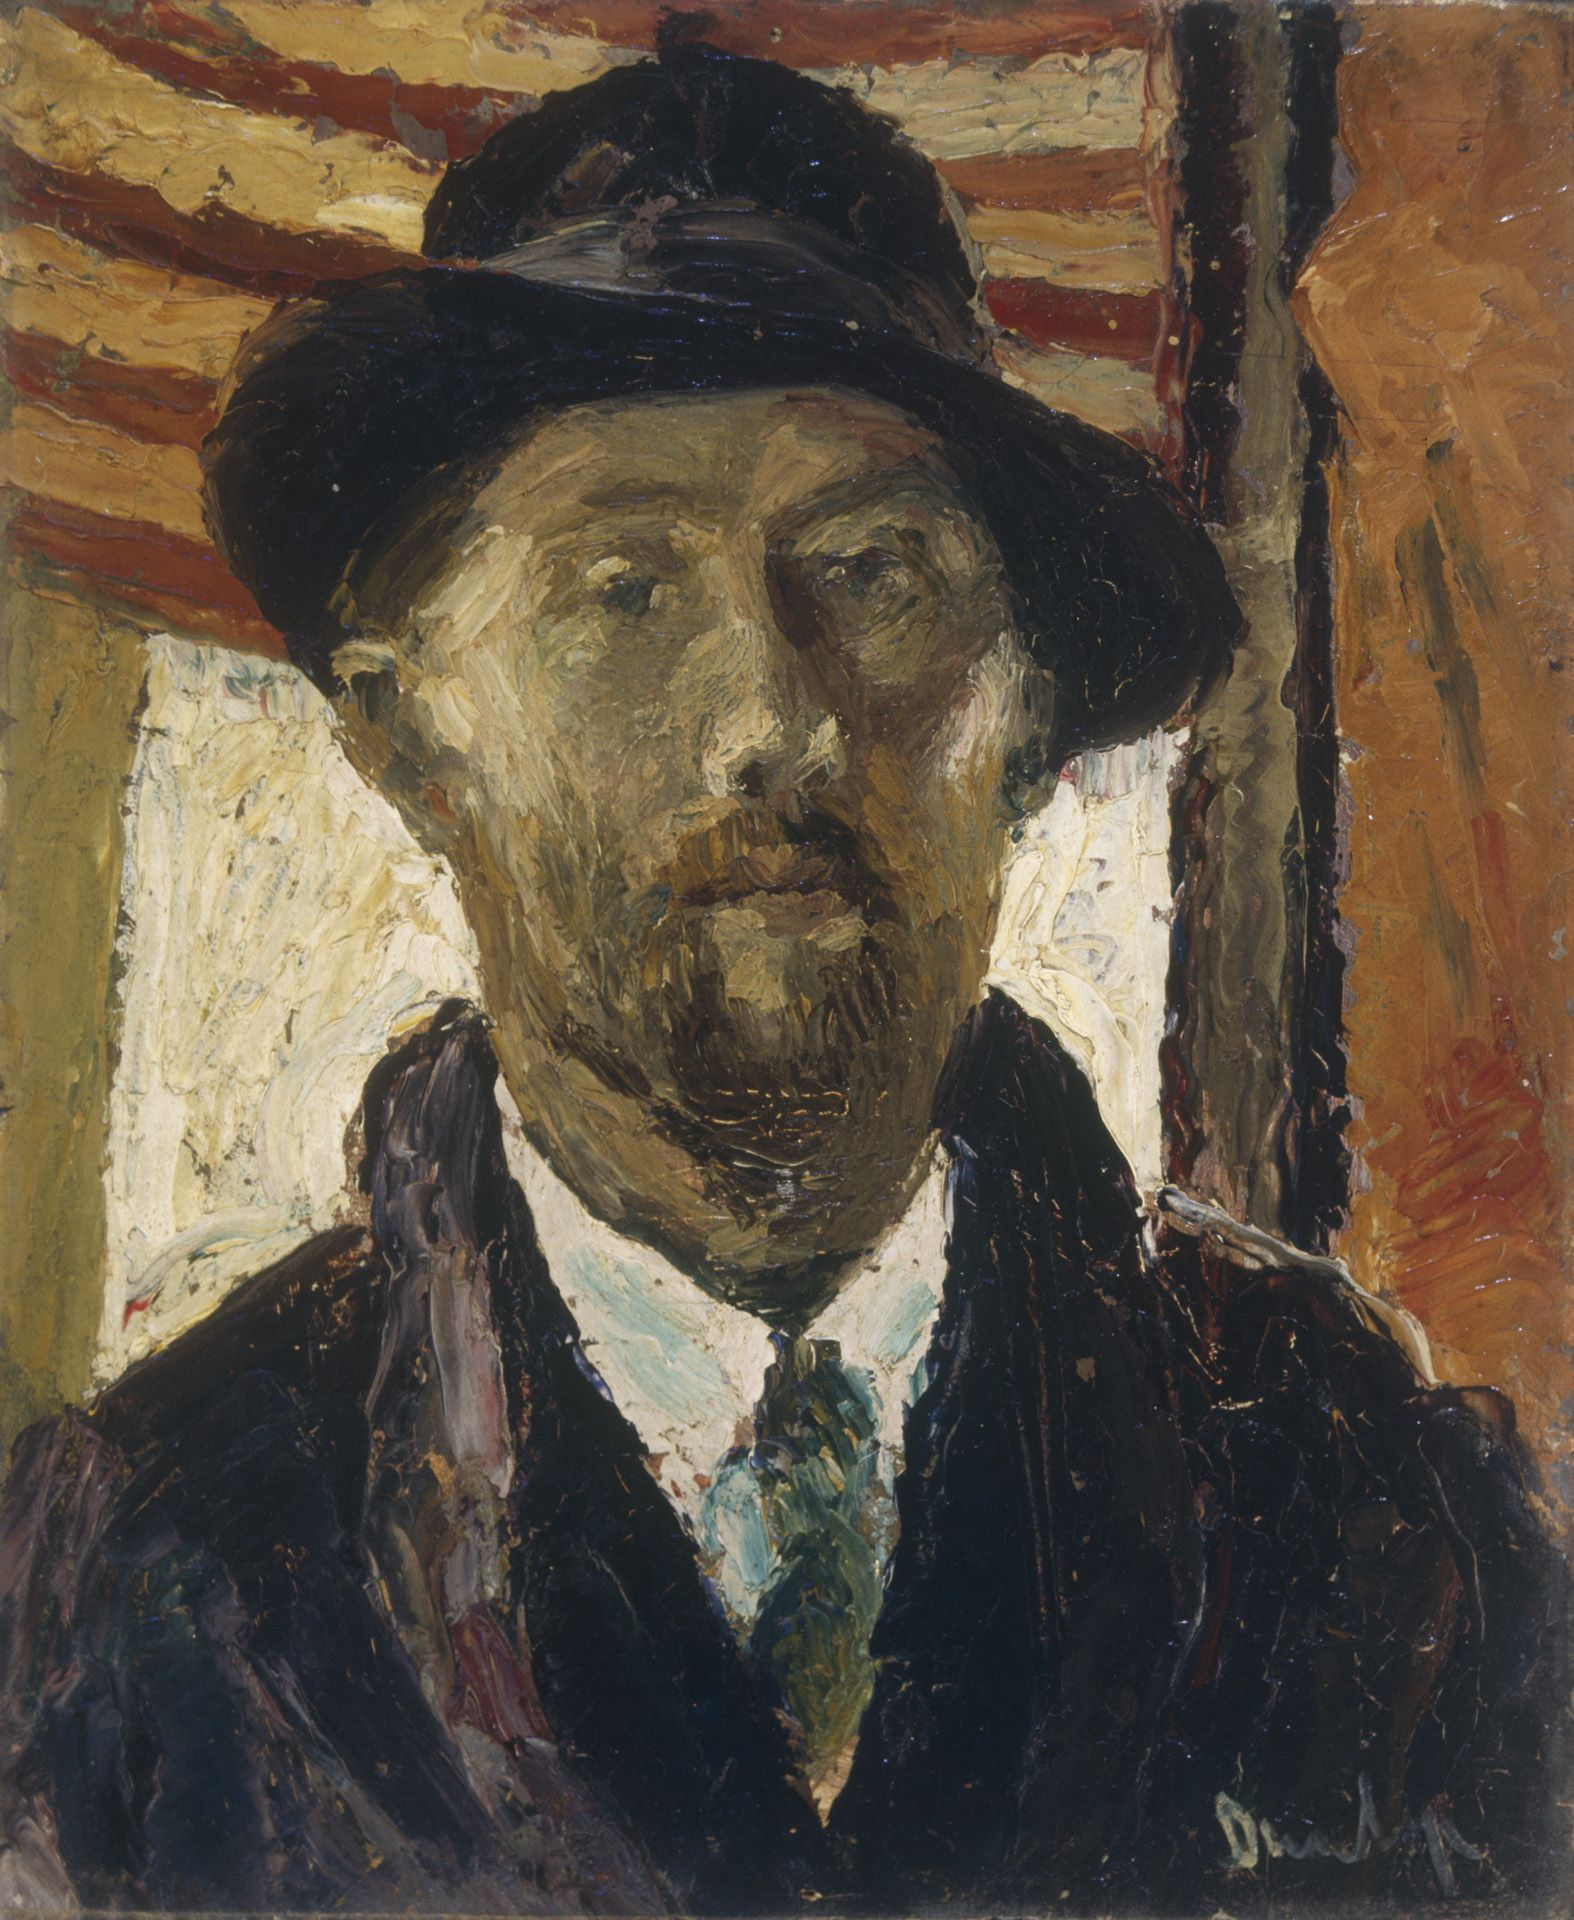 Portrait of a Man by Dunlop